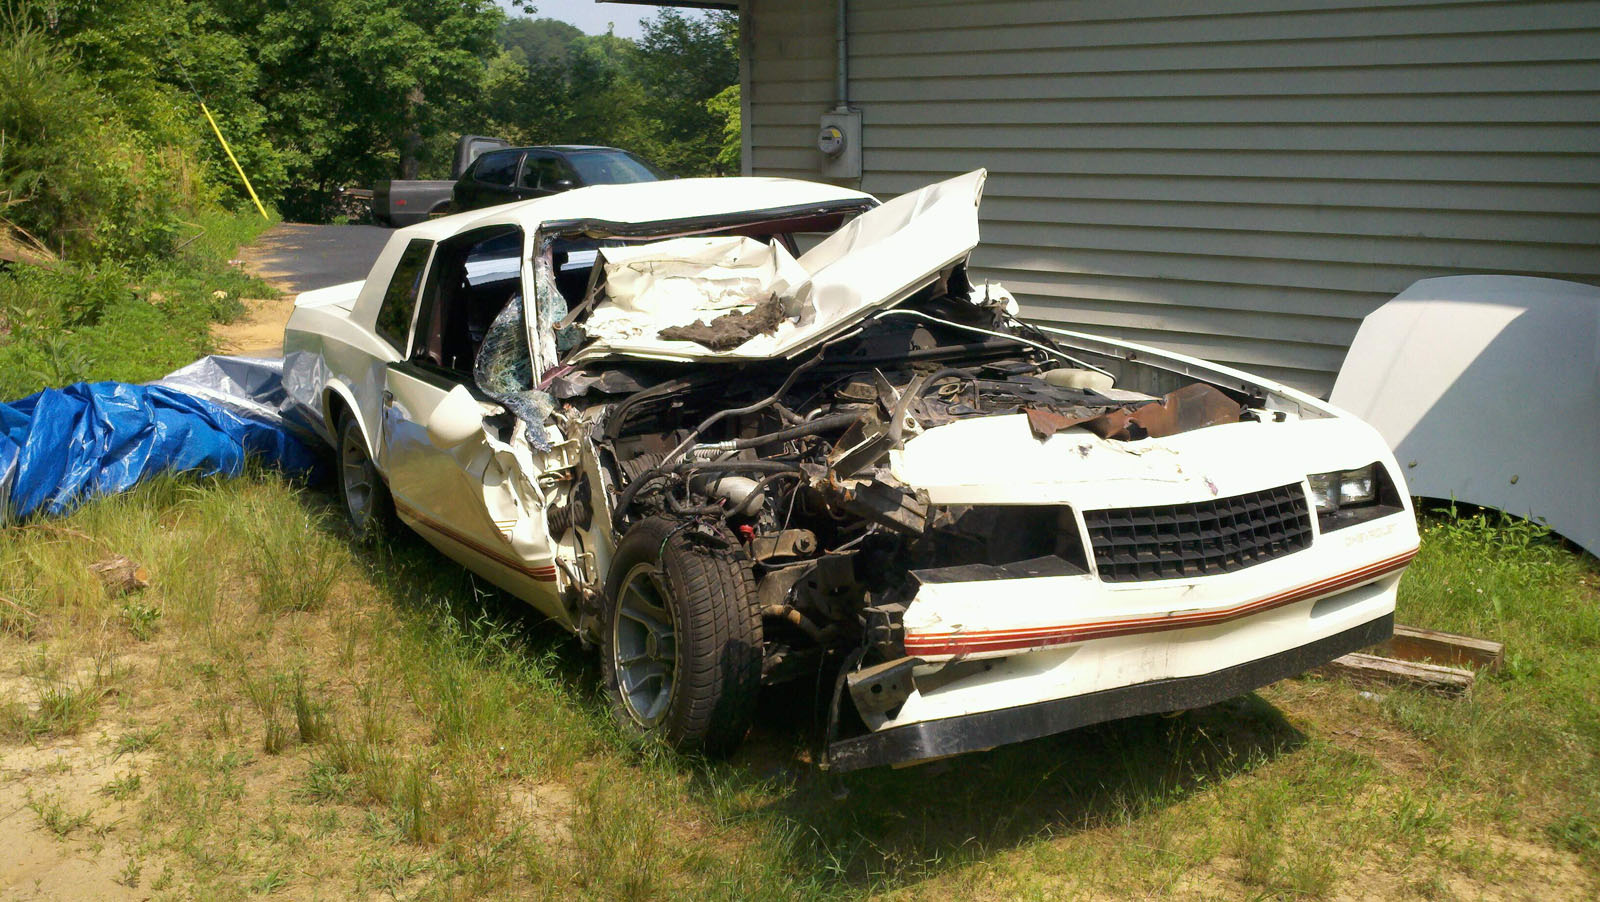 Chevy 1970s Monte Carlo for sale - Muscle Cars Web - American